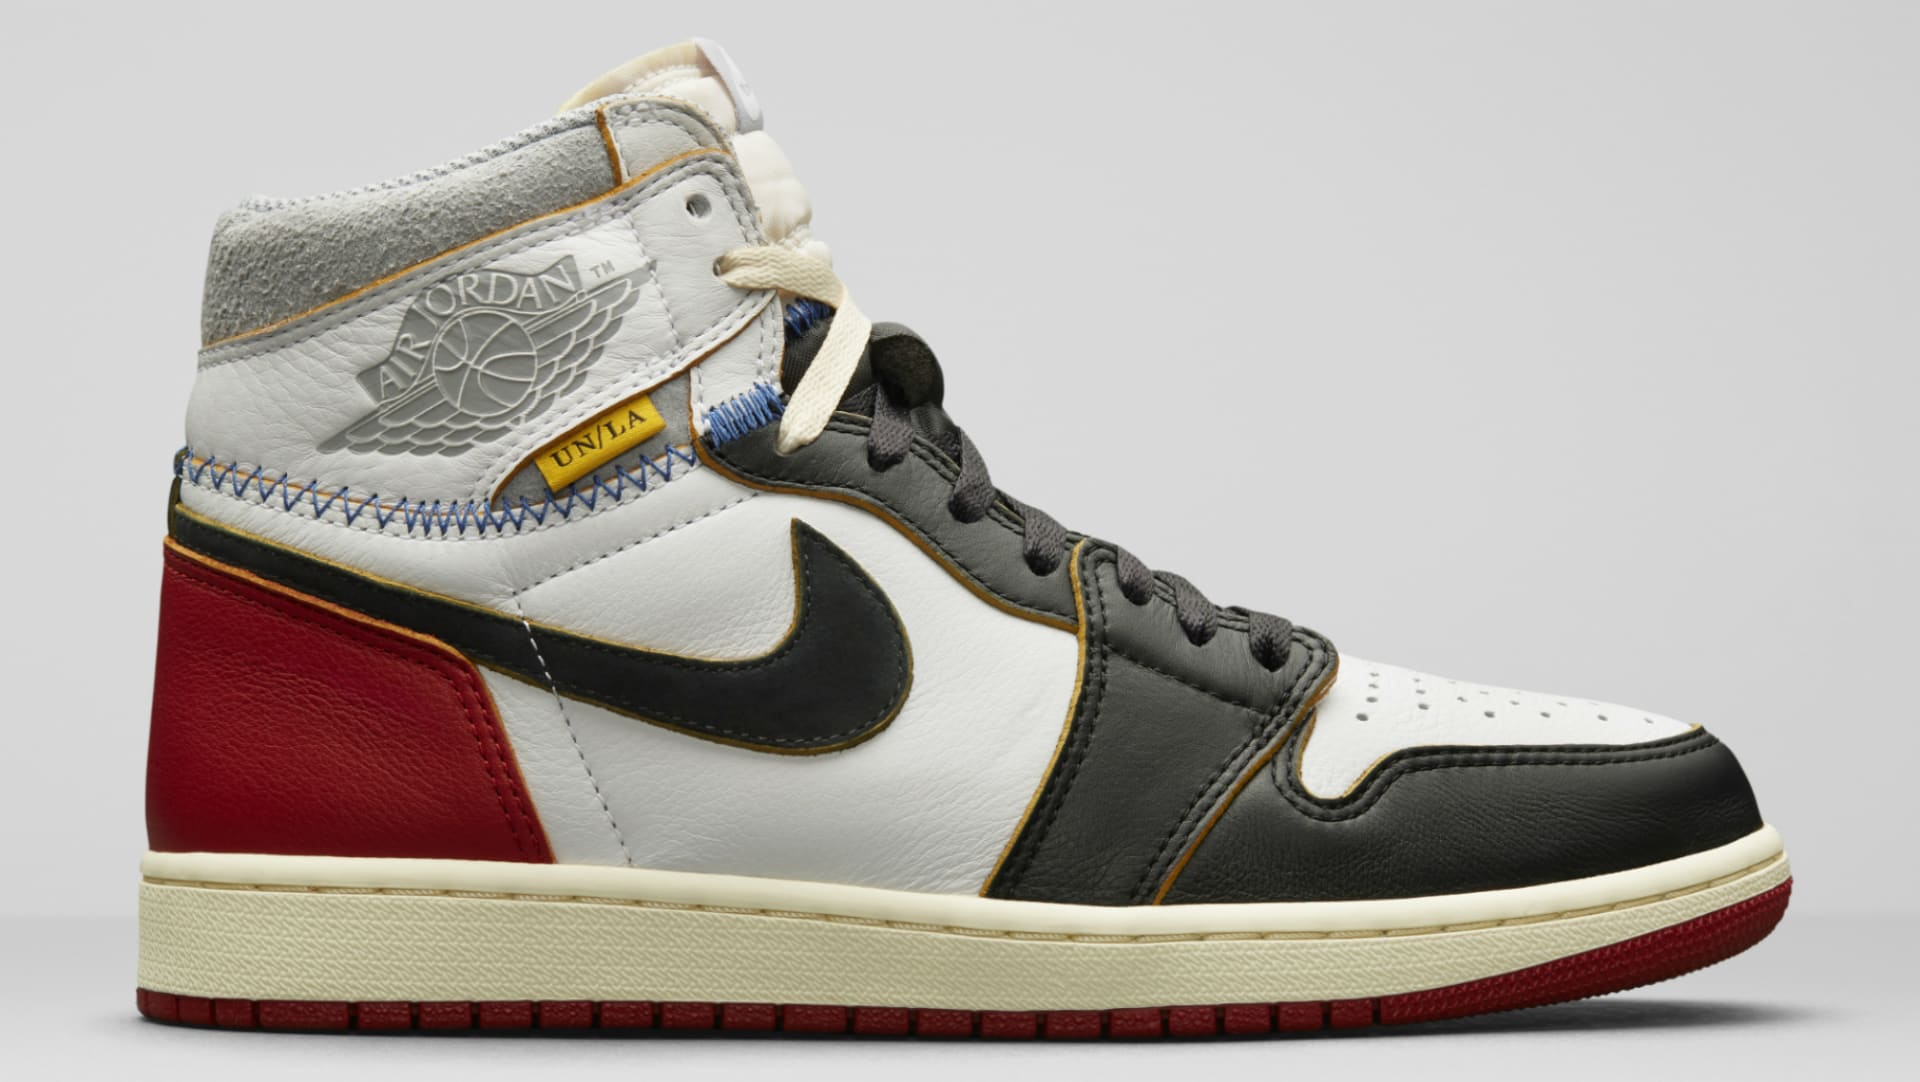 6145971eb6e51a union-la-air-jordan-1-high-nrg-bv1300-. Image via Nike